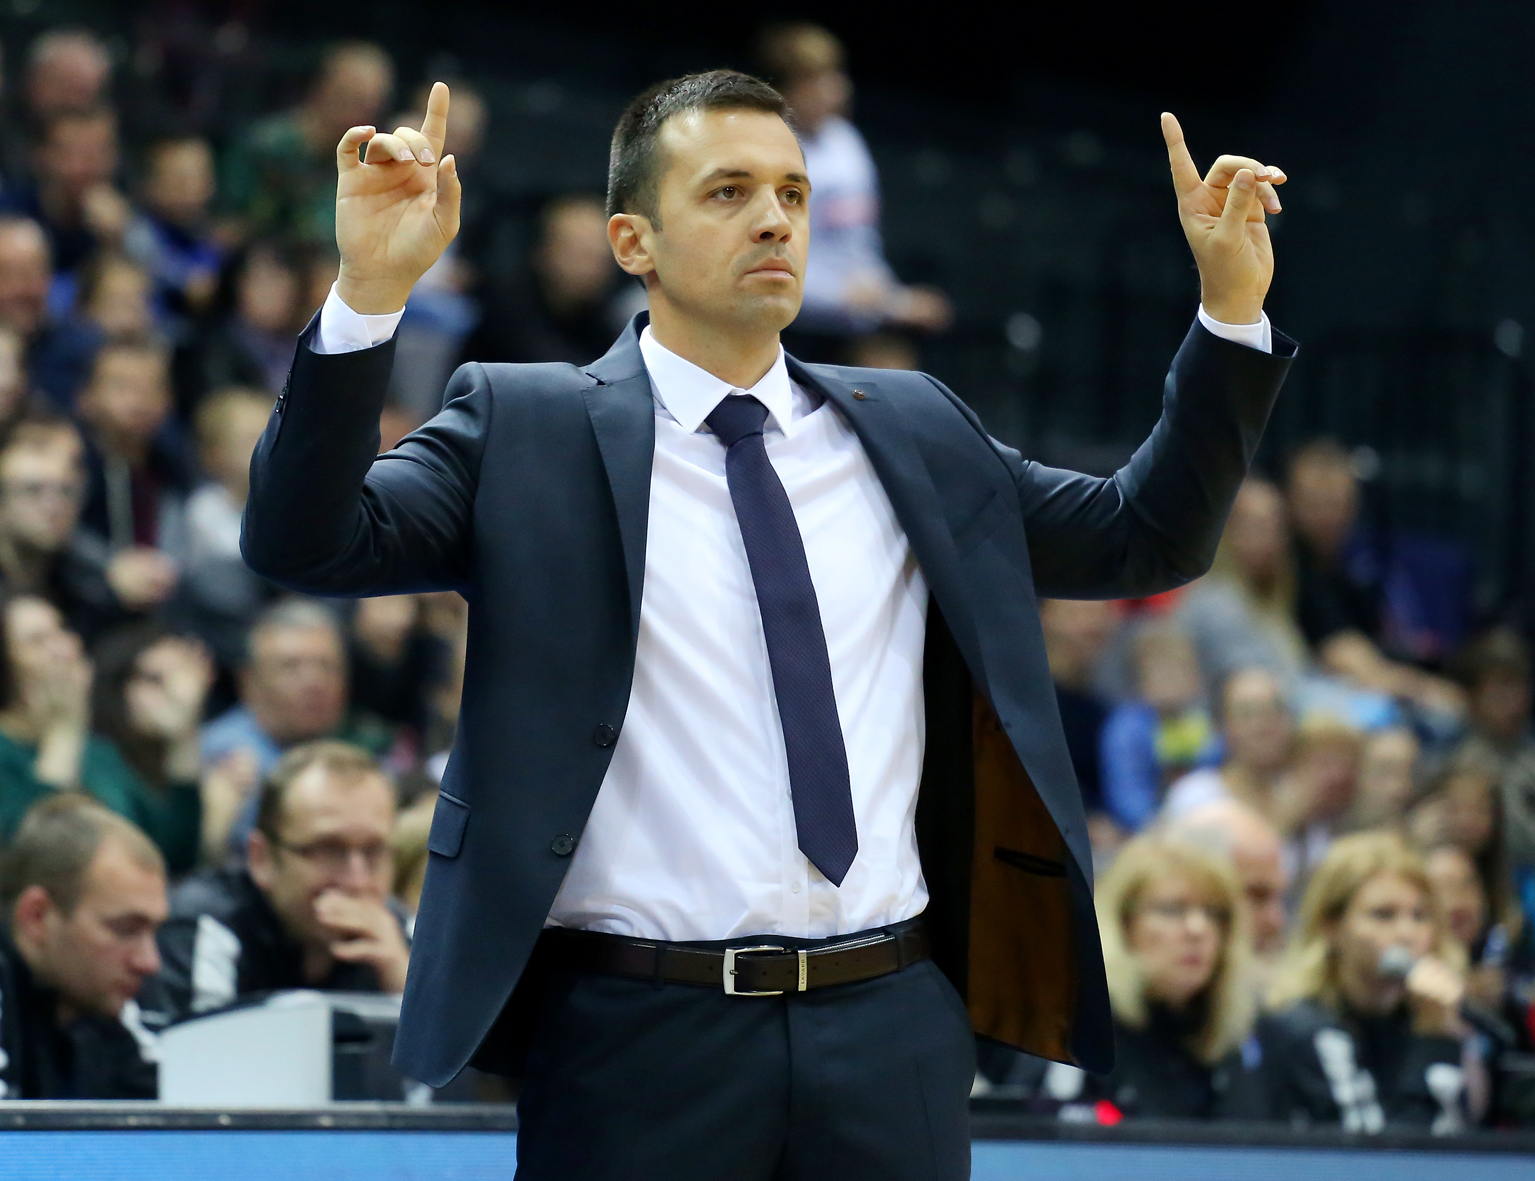 Igor Jovovic: Zielona Gora Has Competed For A Win In All Five Games